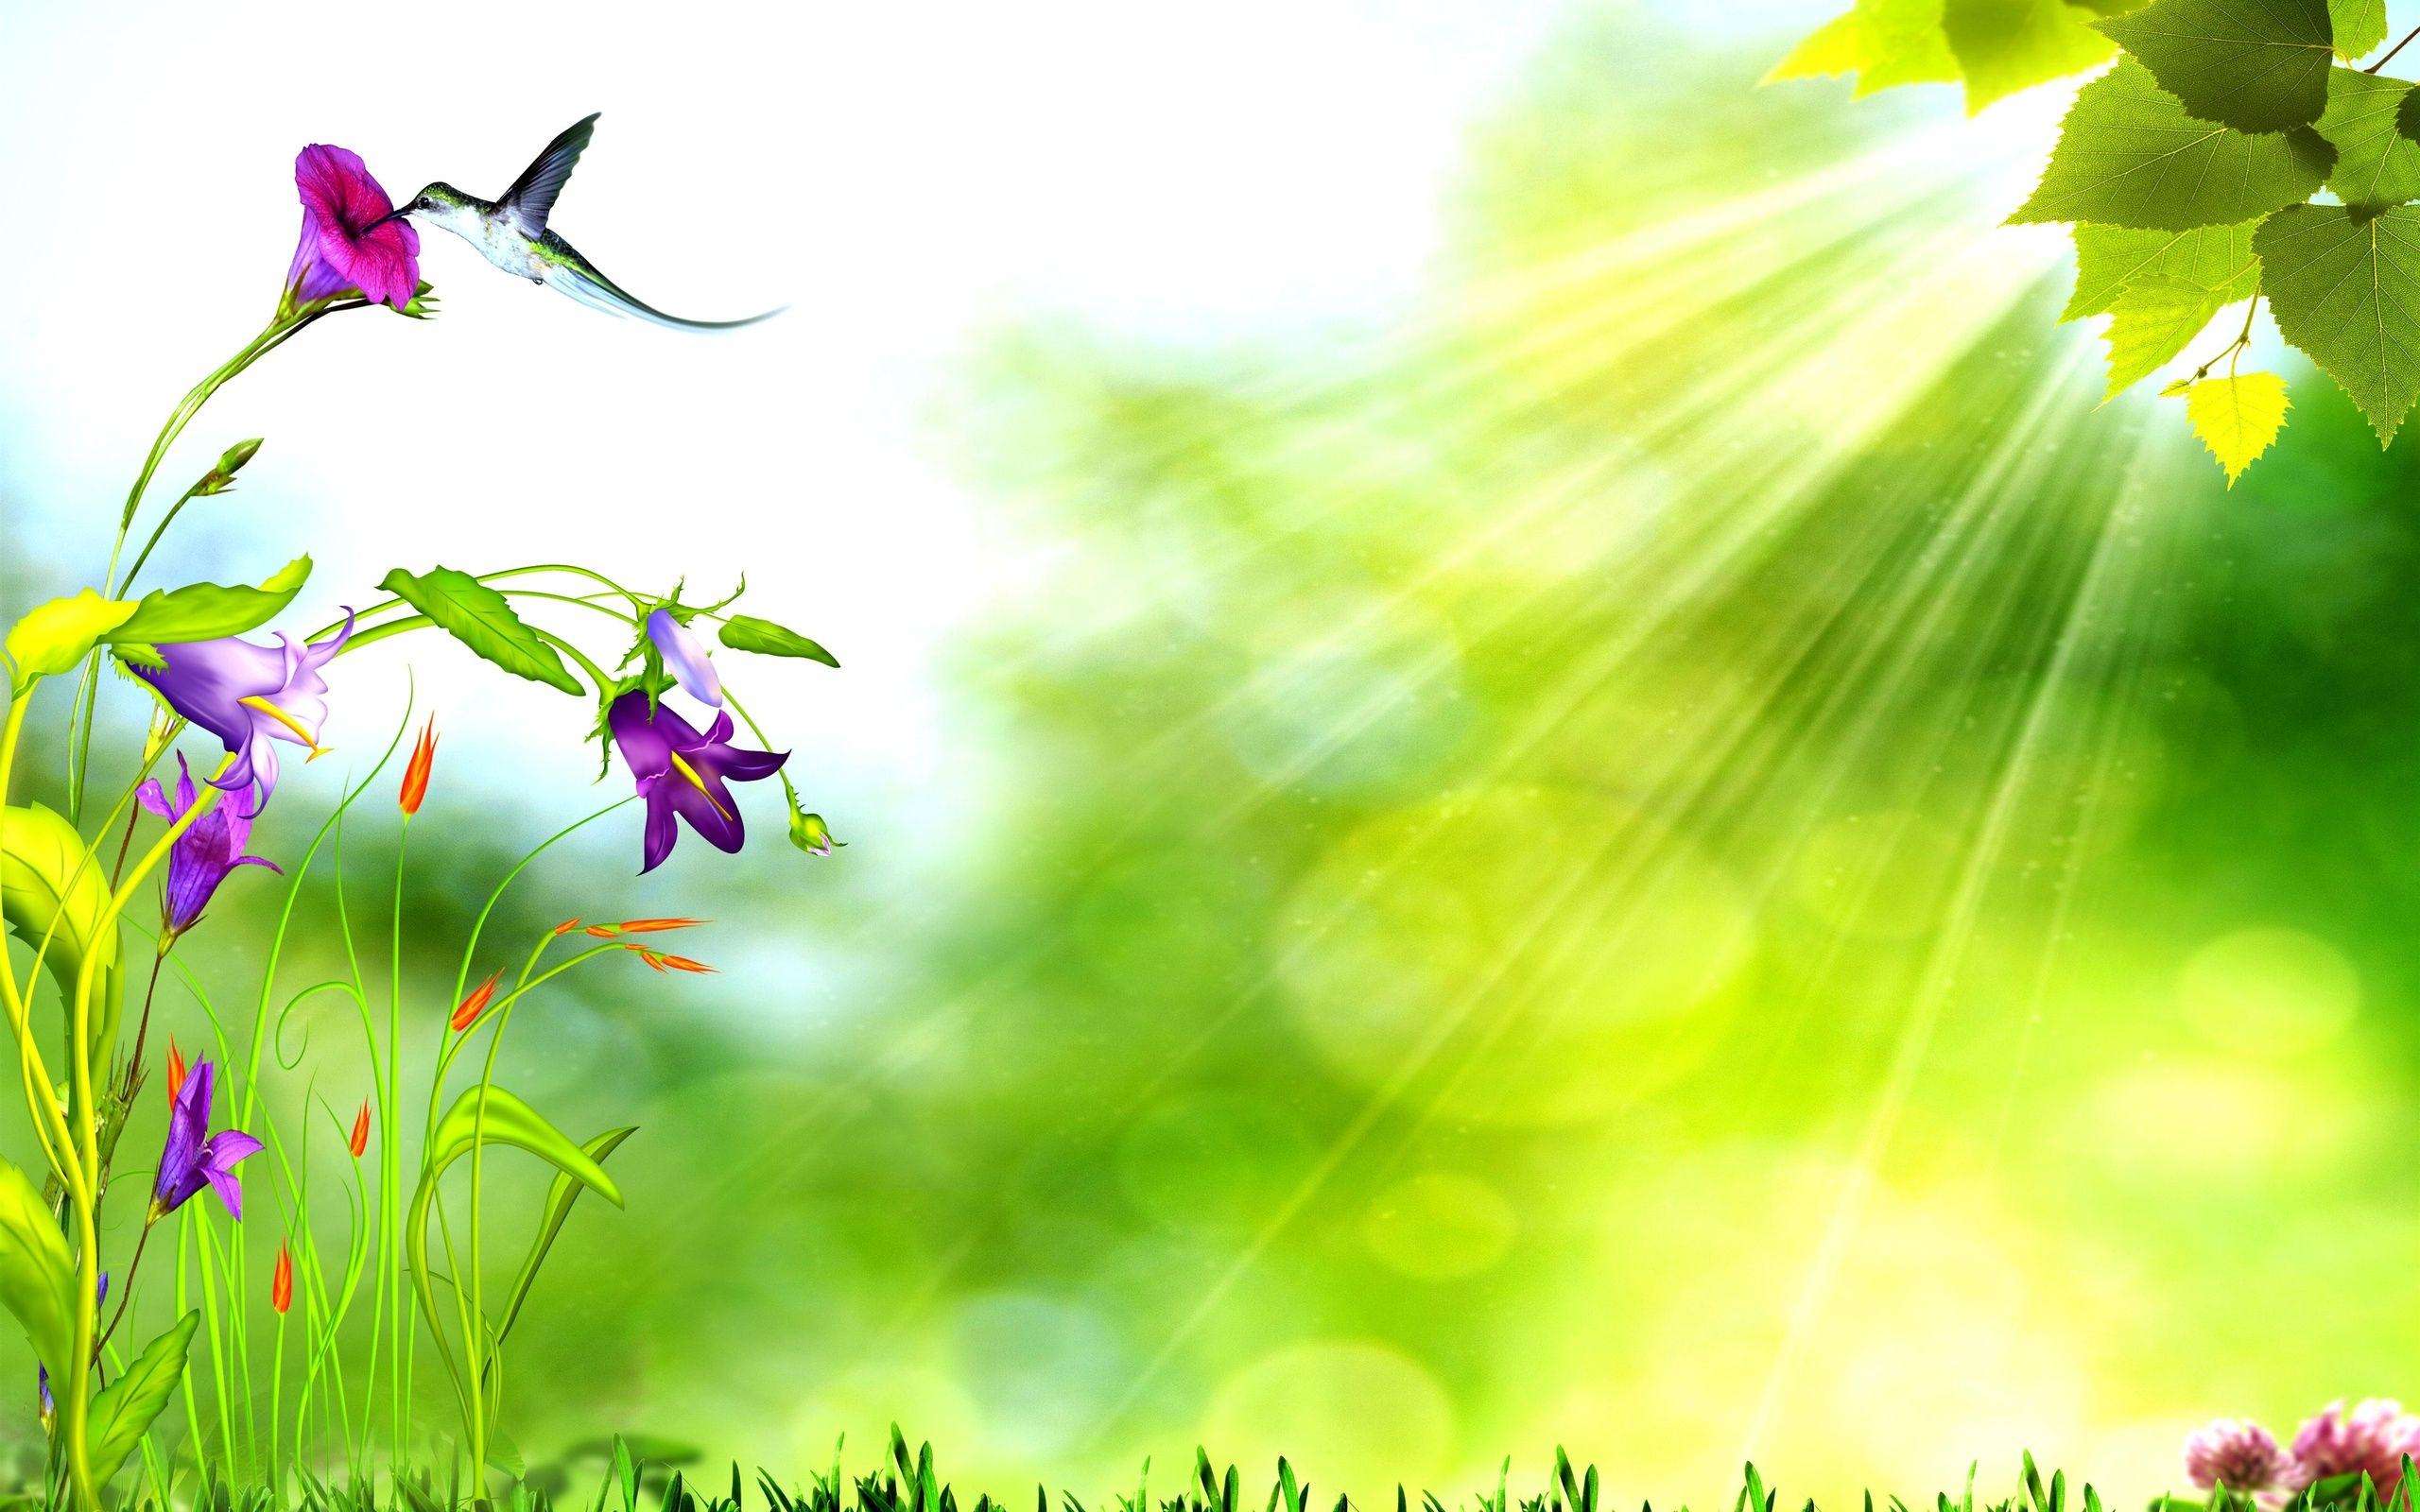 Nature Background Google Trsene Nature Backgrounds Nature Background Images Fantasy Background